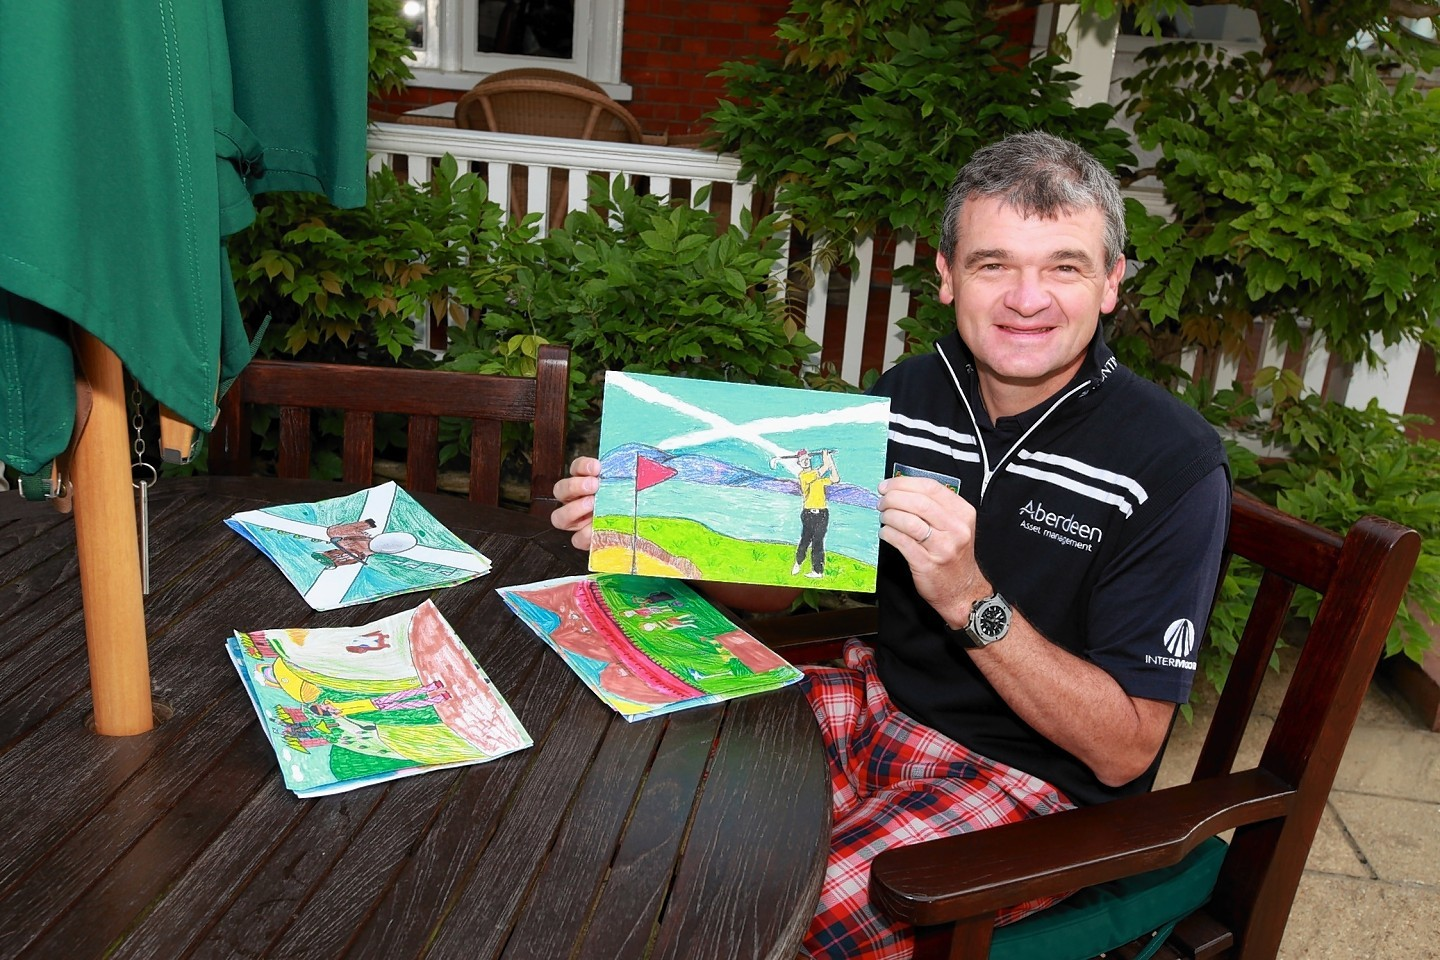 Entries will be judged by a panel which includes former Open champion Paul Lawrie.